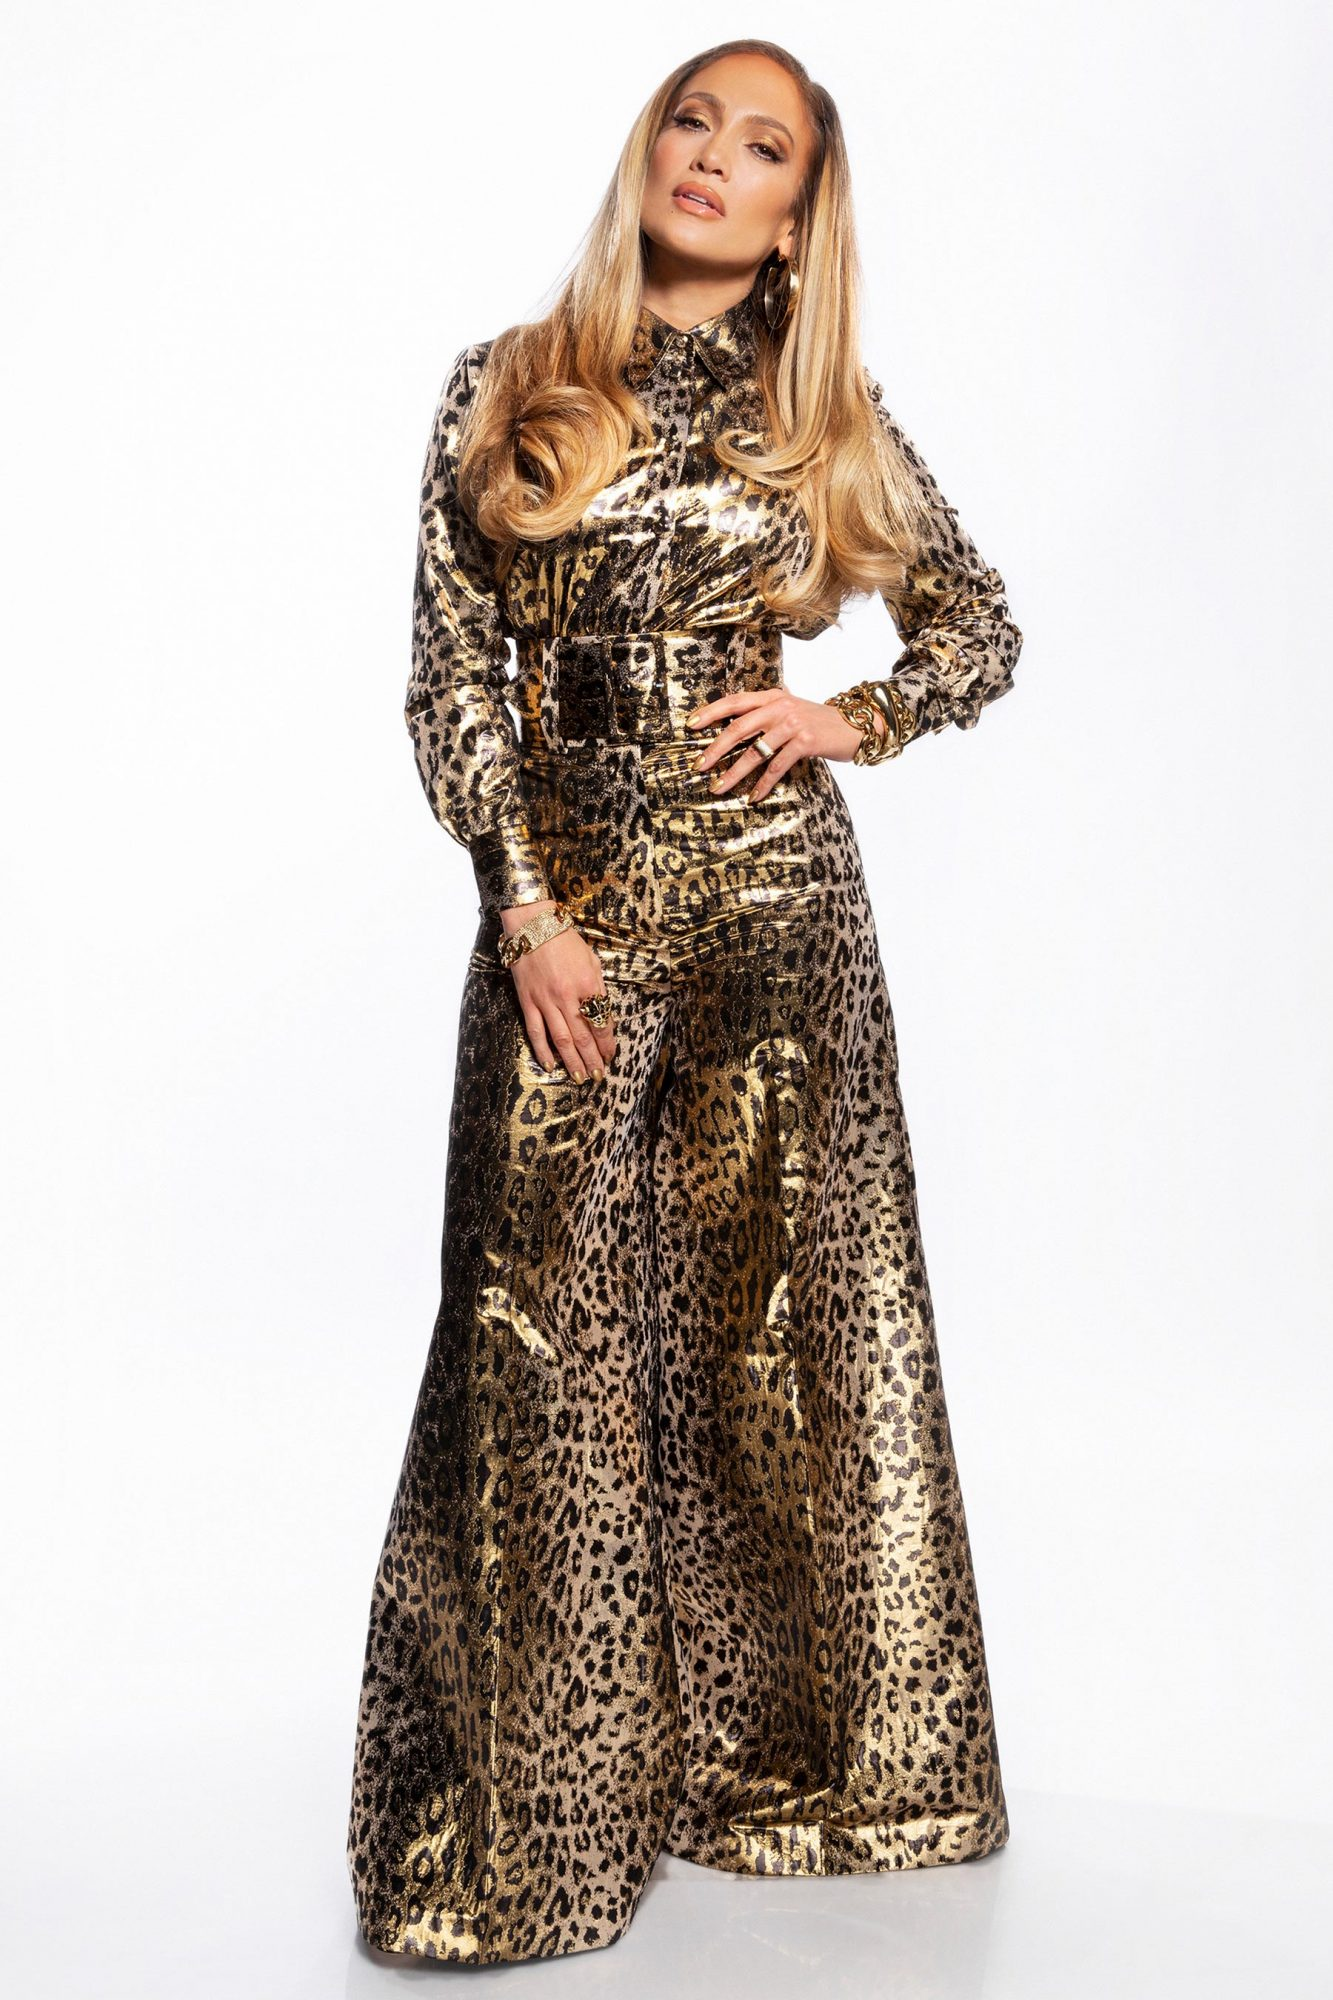 Absolutely purrrr-fect in this shimmery leopard print jumpsuit